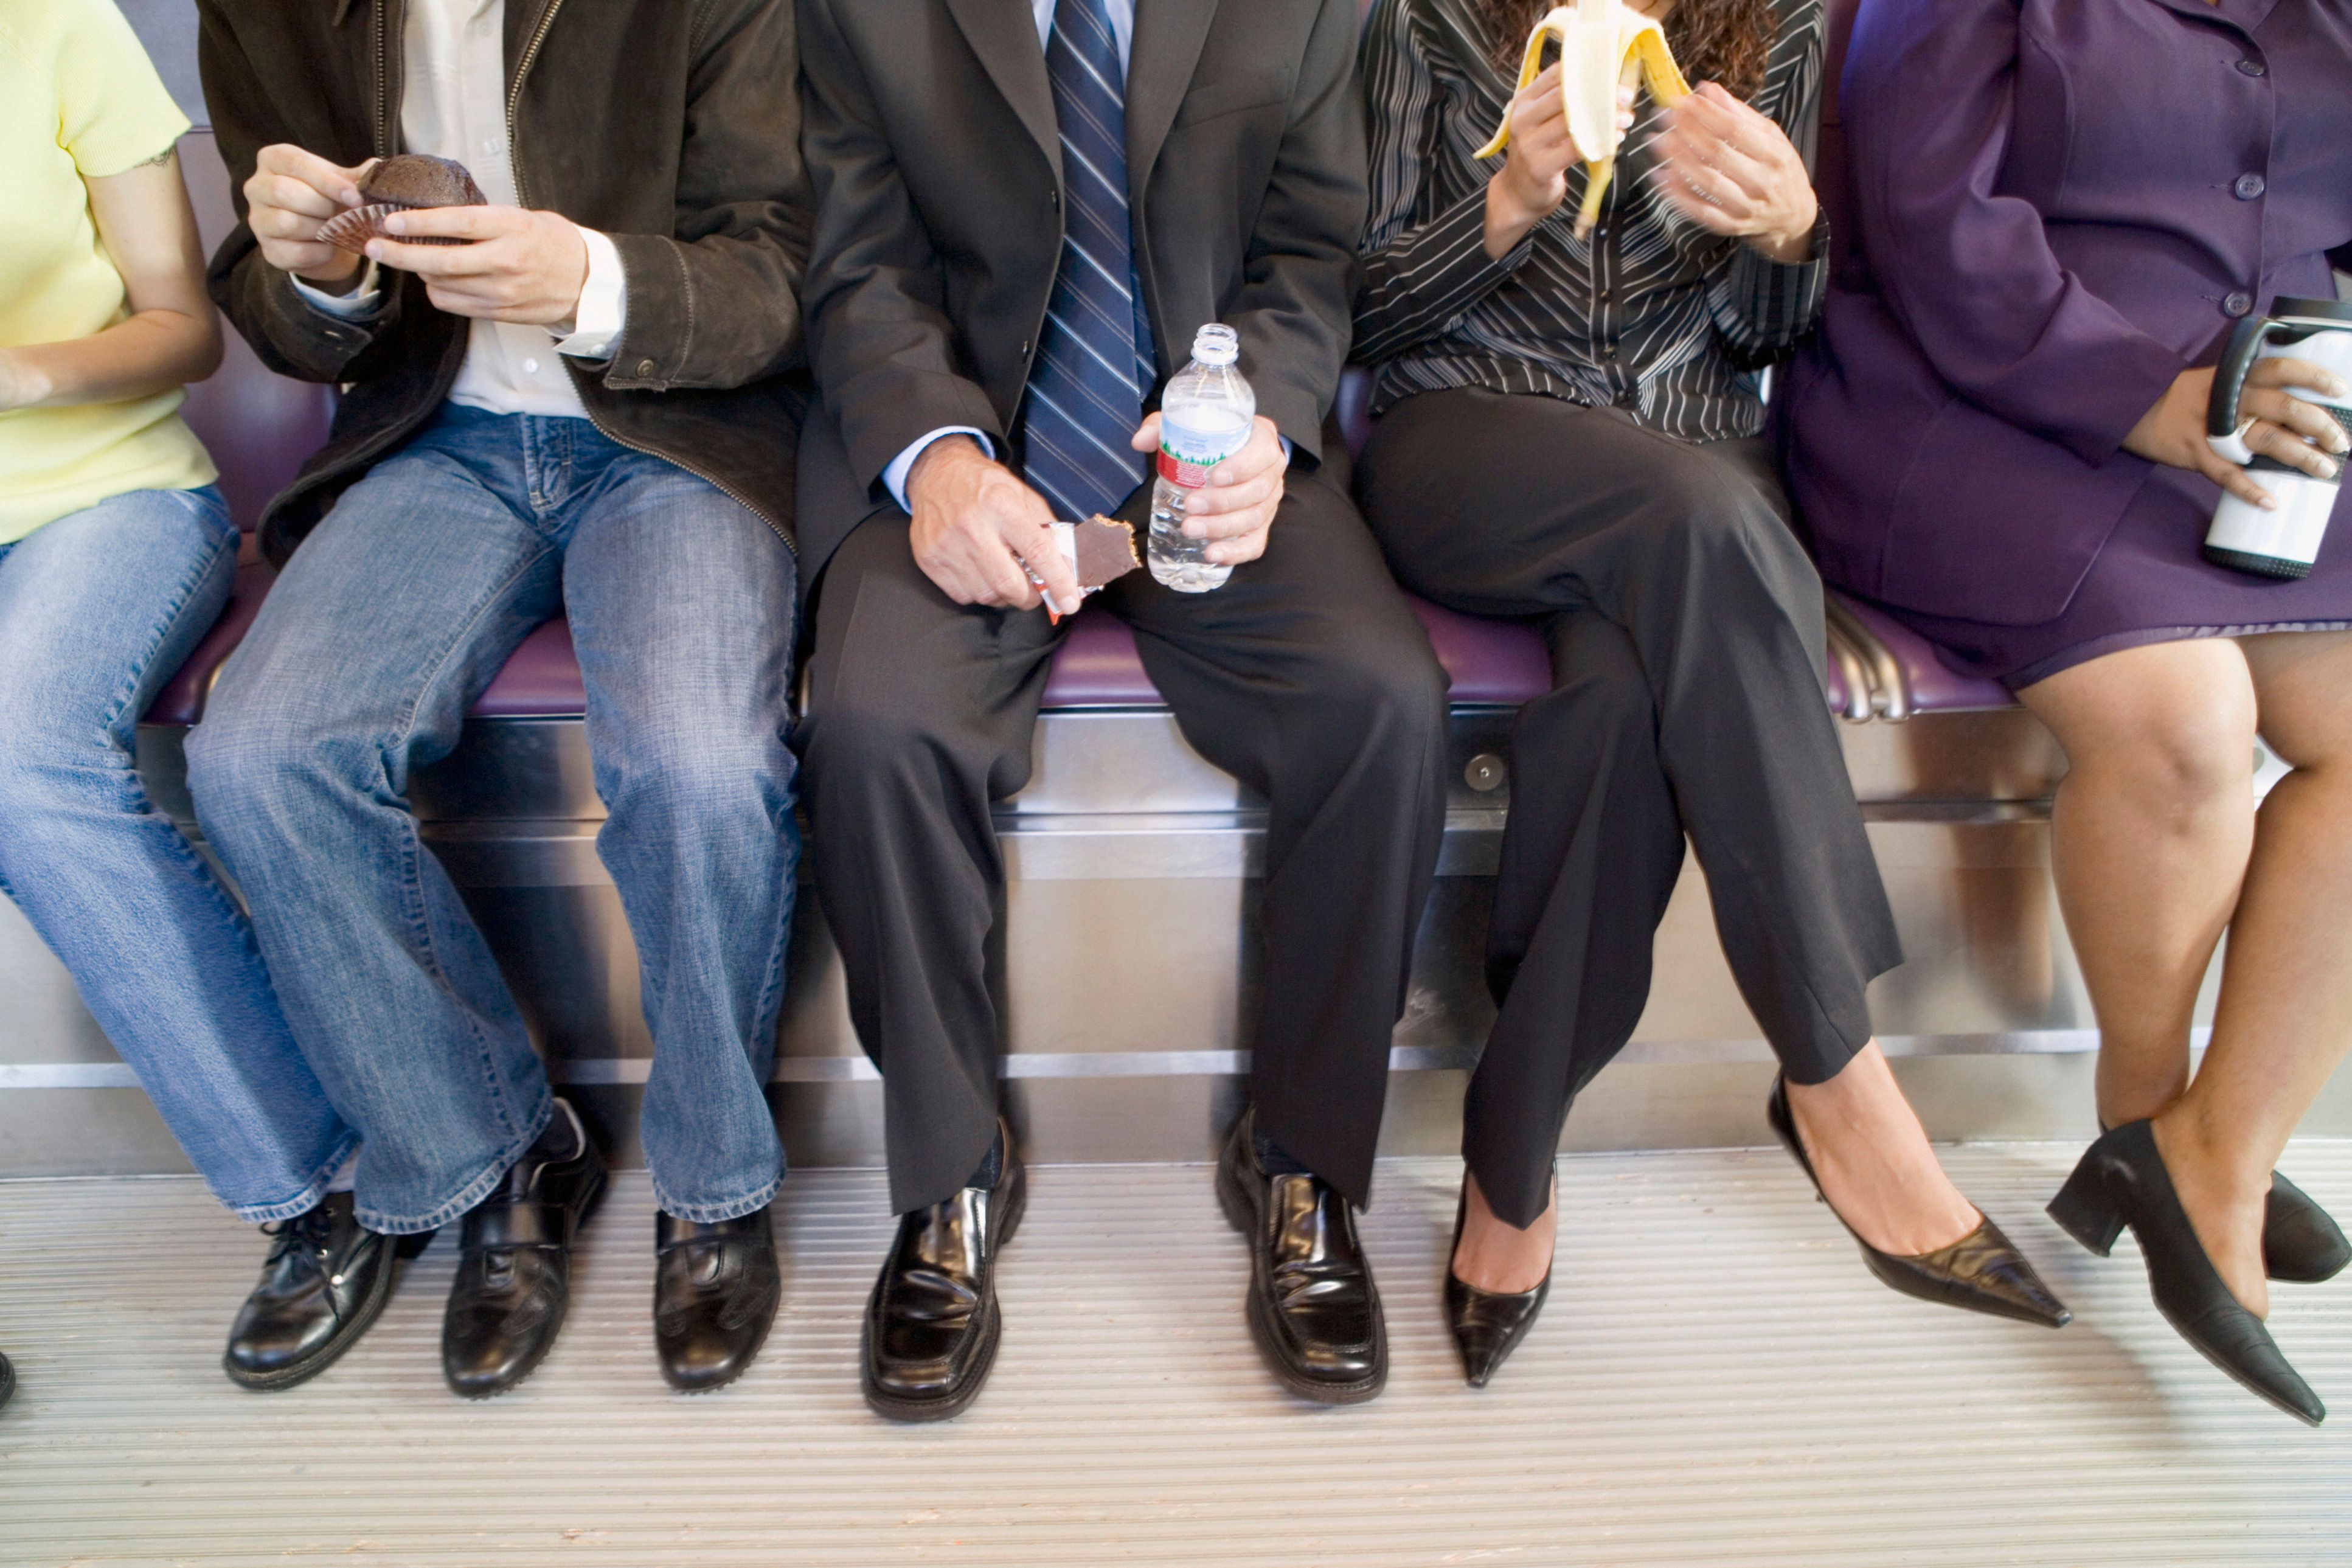 Commuters Are Consuming Extra 800 Calories Every Week And It's Harming Their